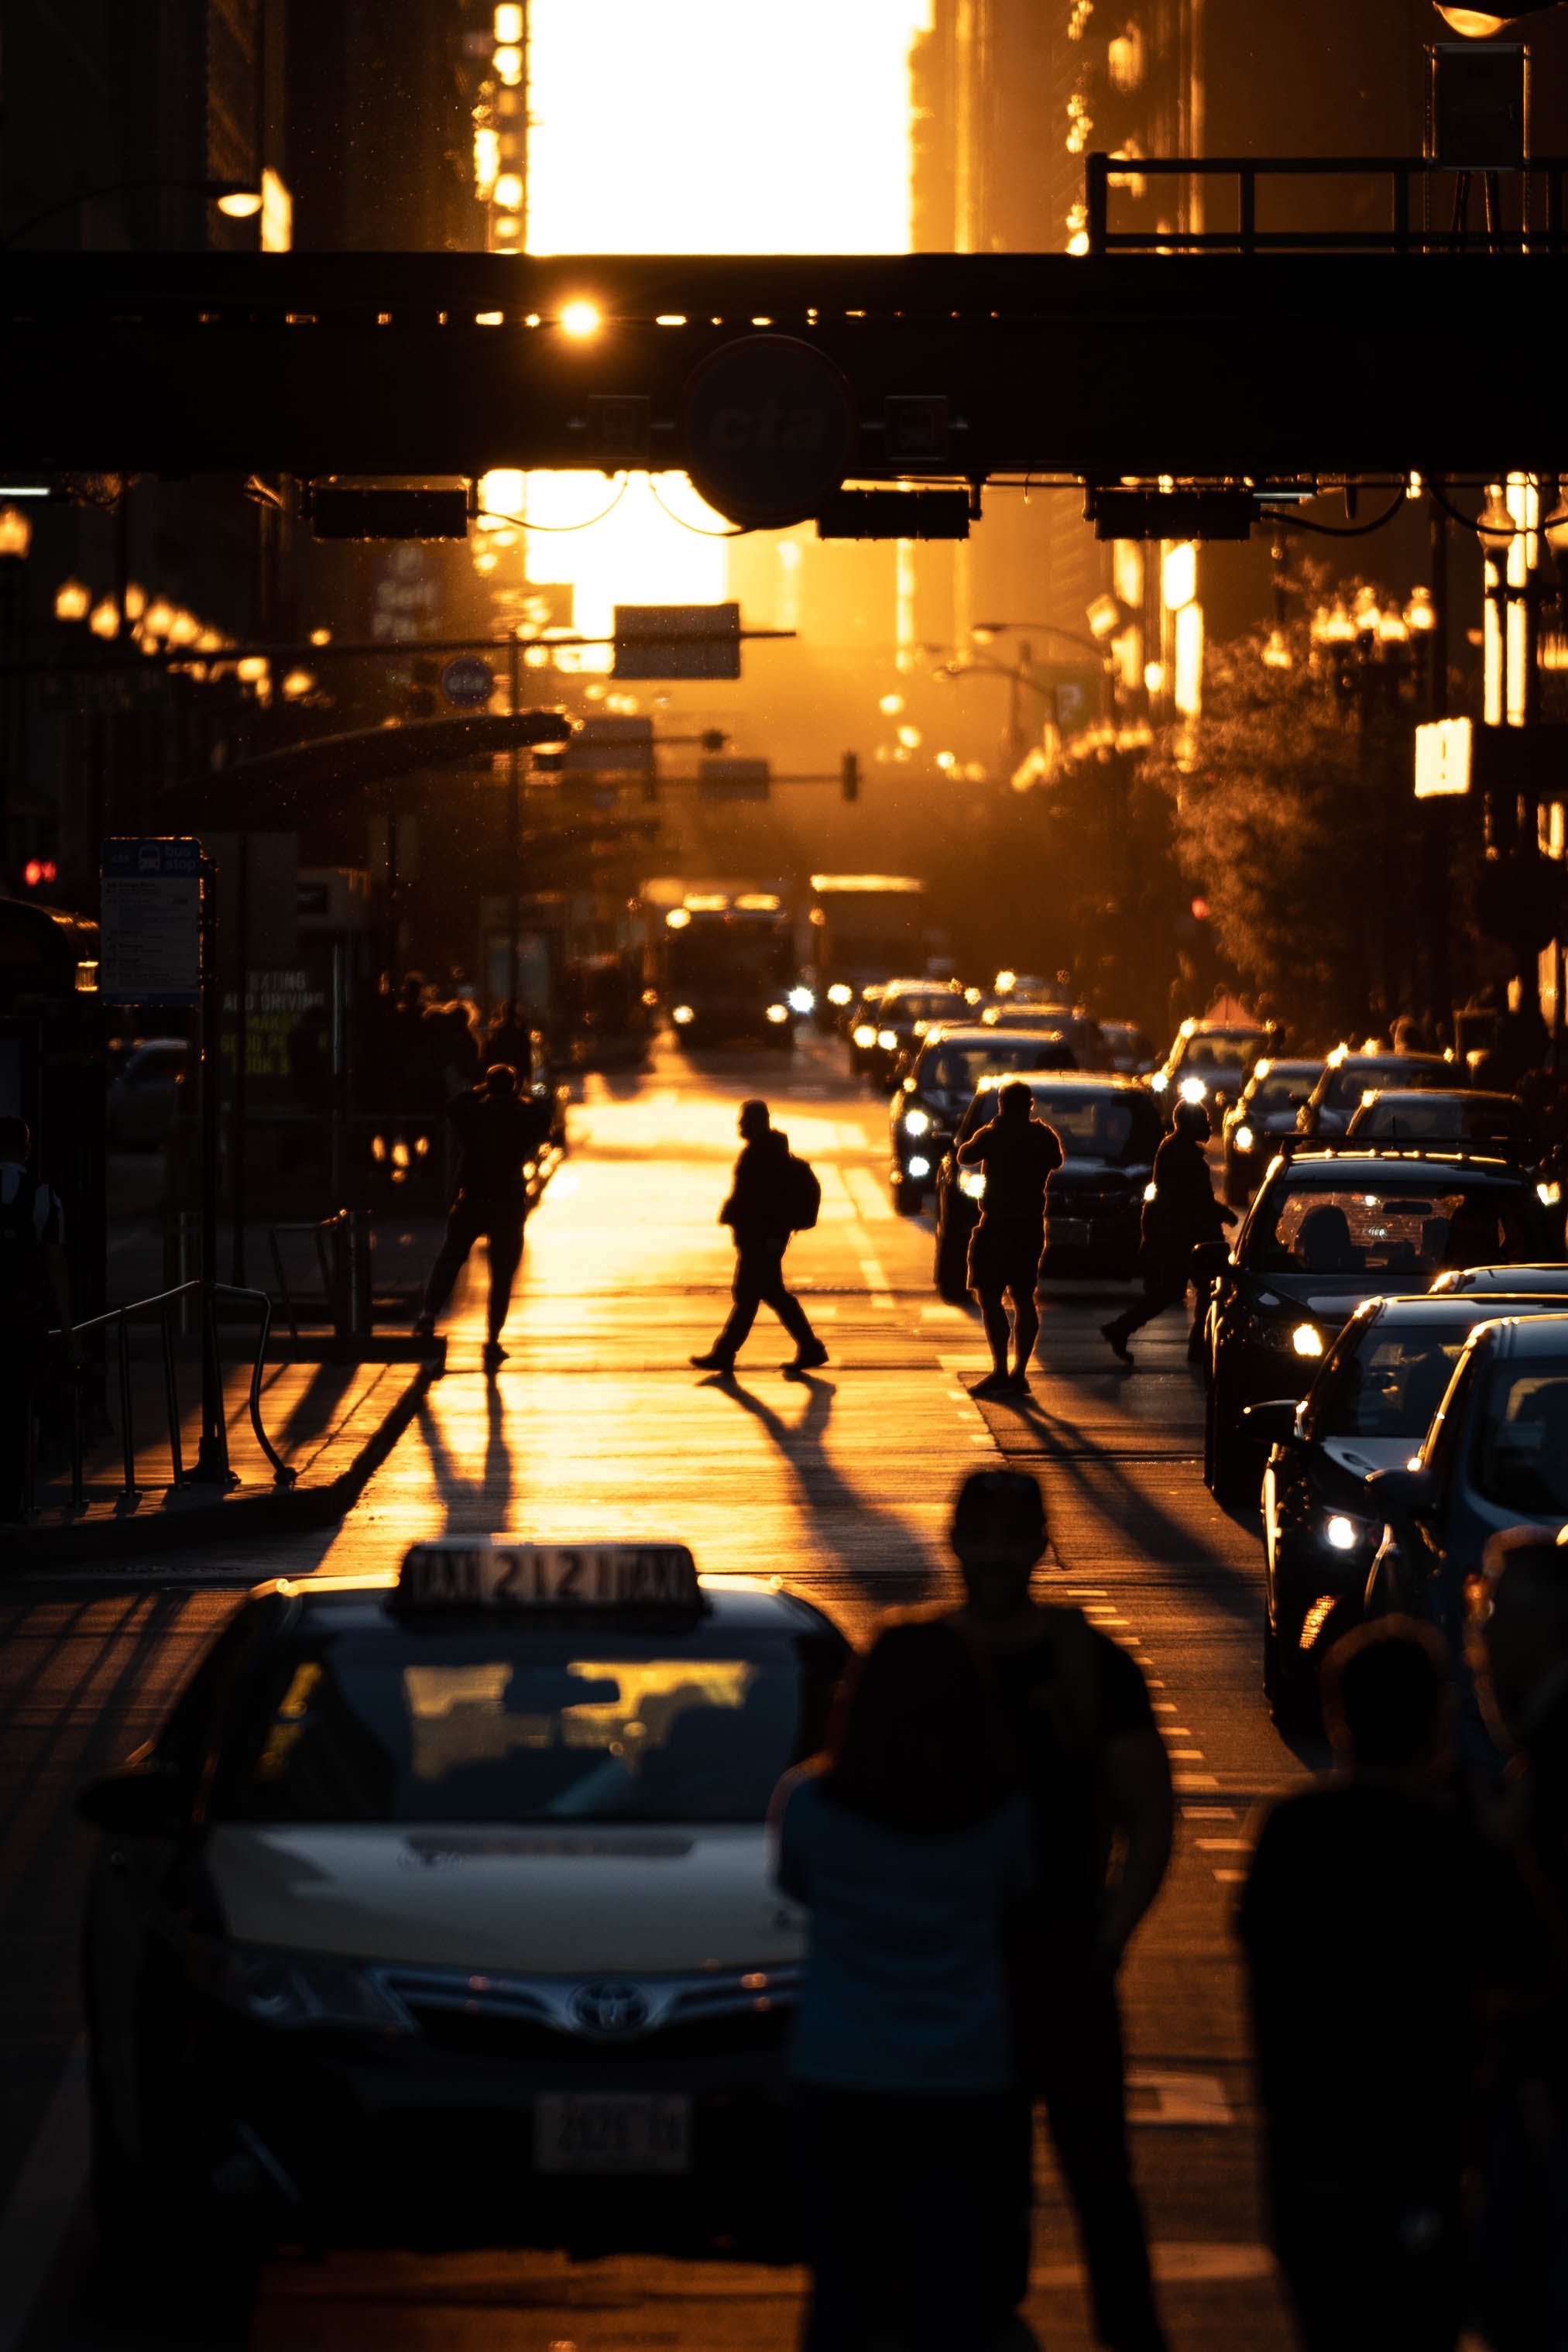 People Walking on Street during Golden Hour